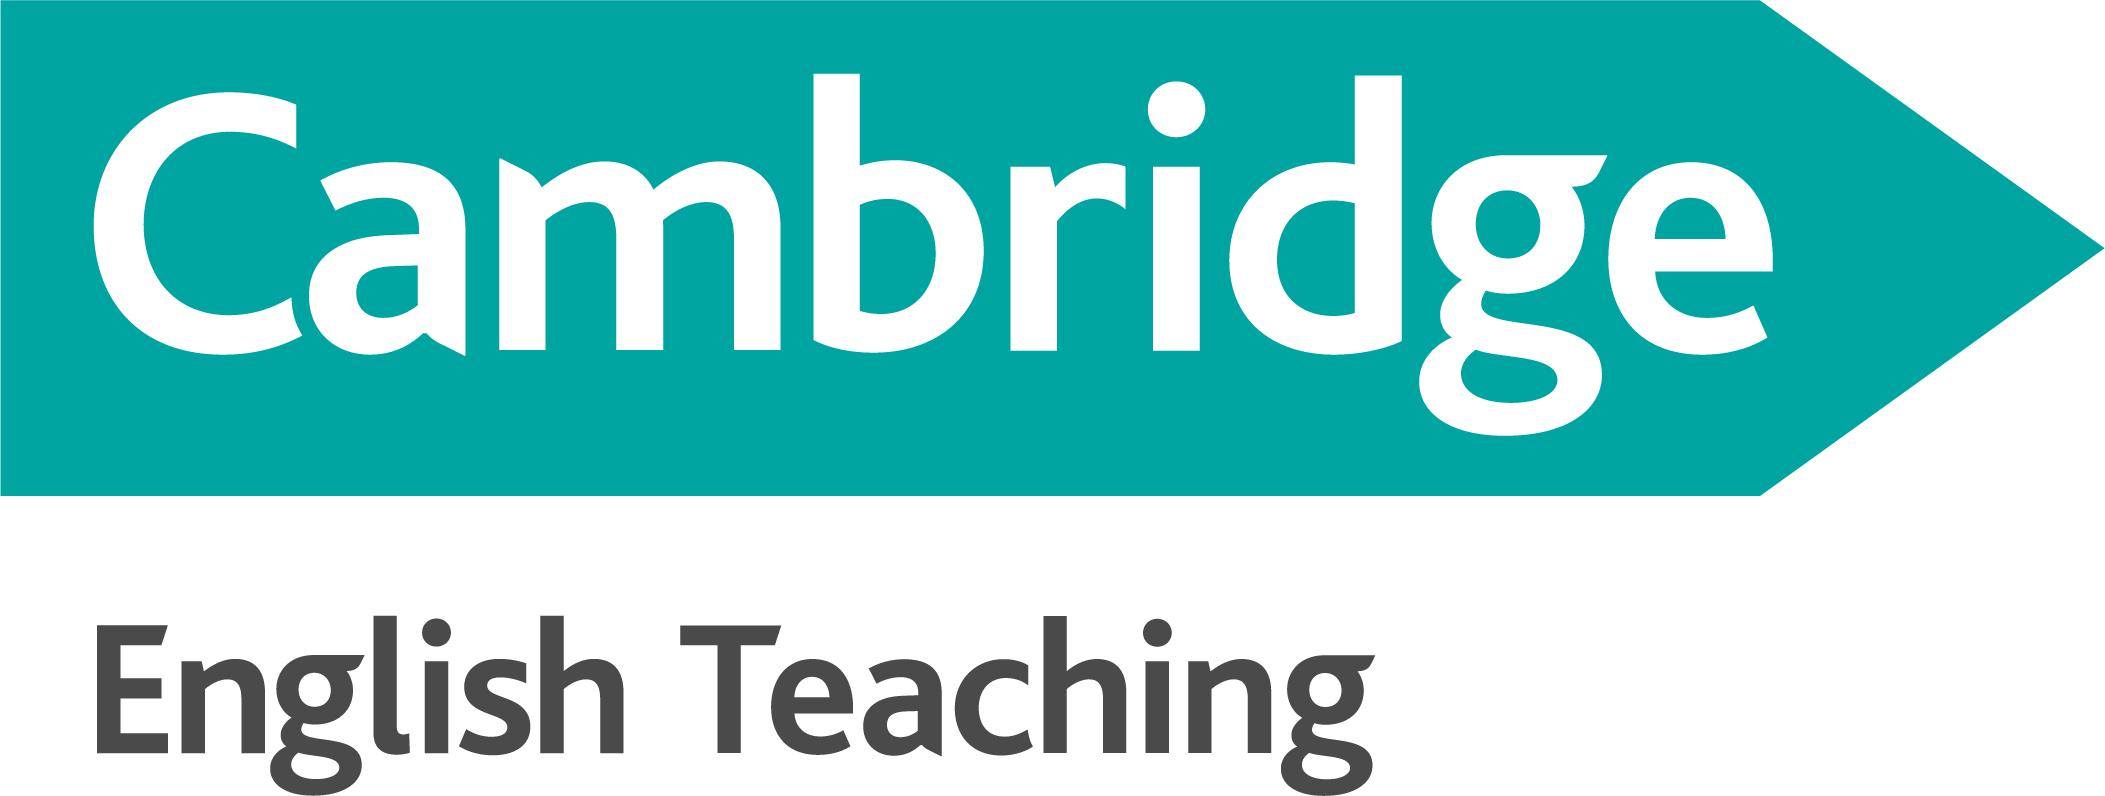 cambridge-teacher-training-logo